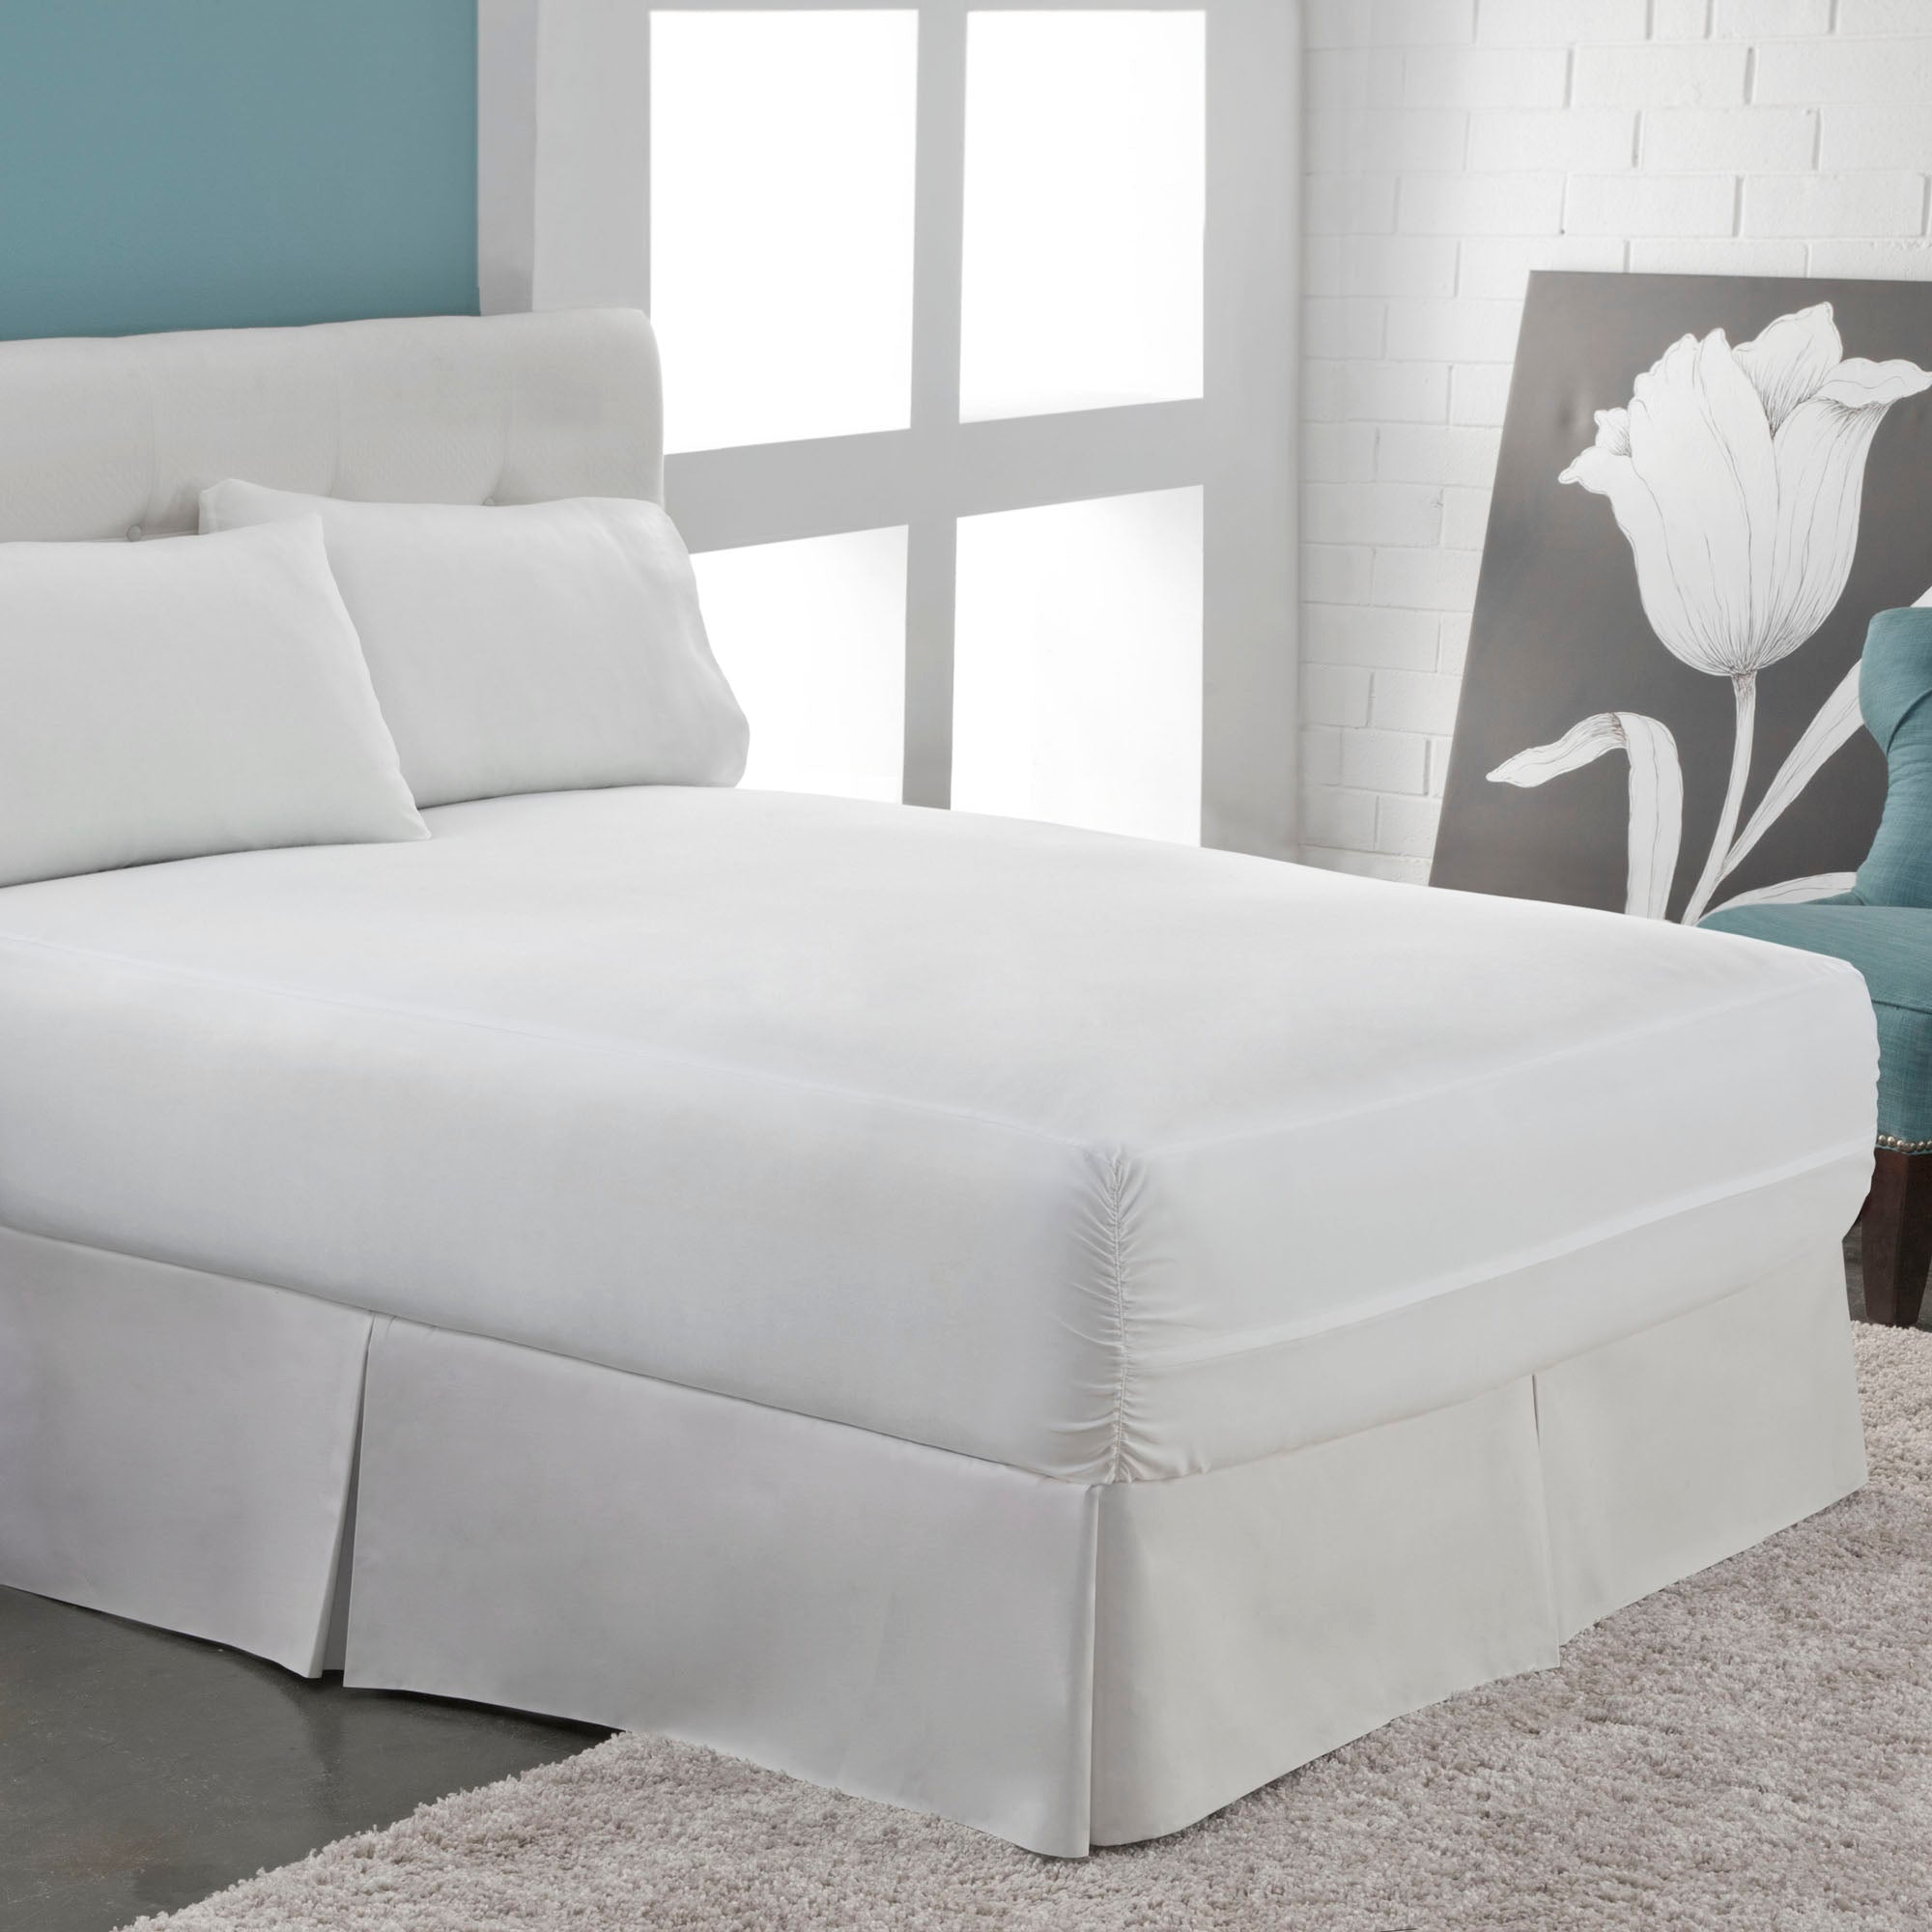 Aller-Free Six-Sided Mattress Encasement